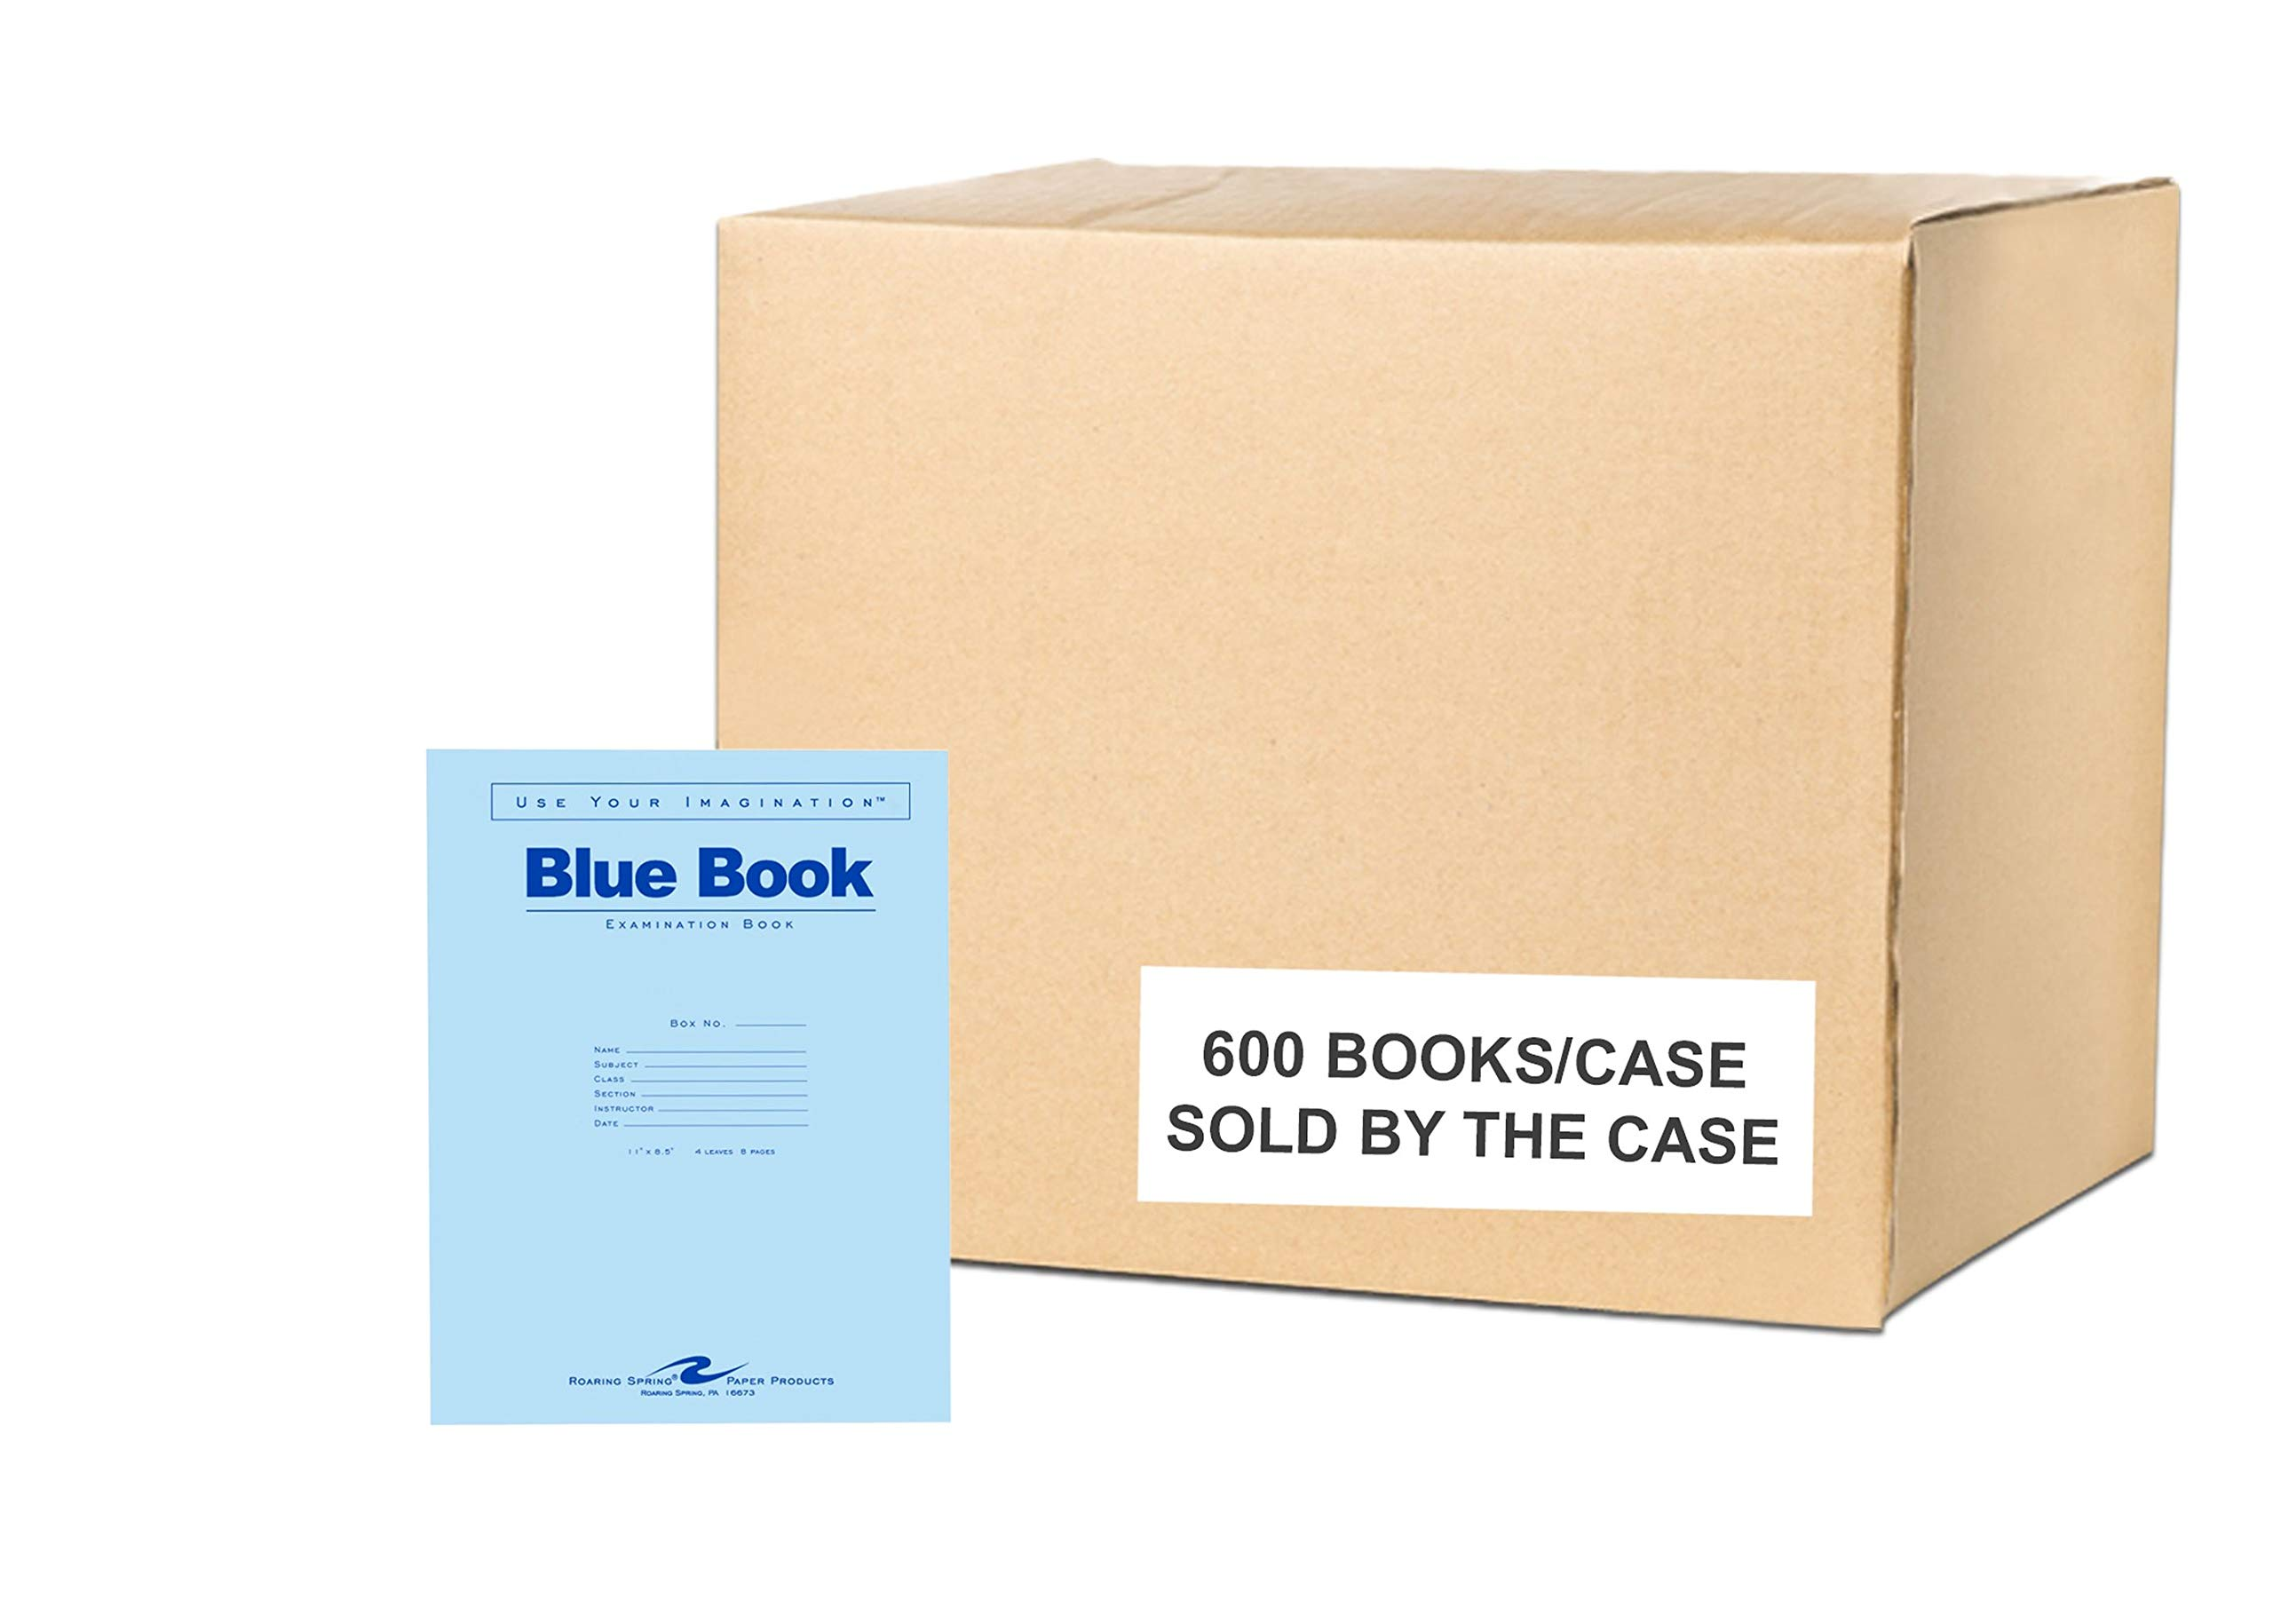 Case of 600 Exam Books, 11''x8.5'', 4 sheets/8 pages of 15# Smooth White Paper, Wide Ruled W/Margin, Heavy Blue Cover, Stapled by Roaring Spring Paper Products